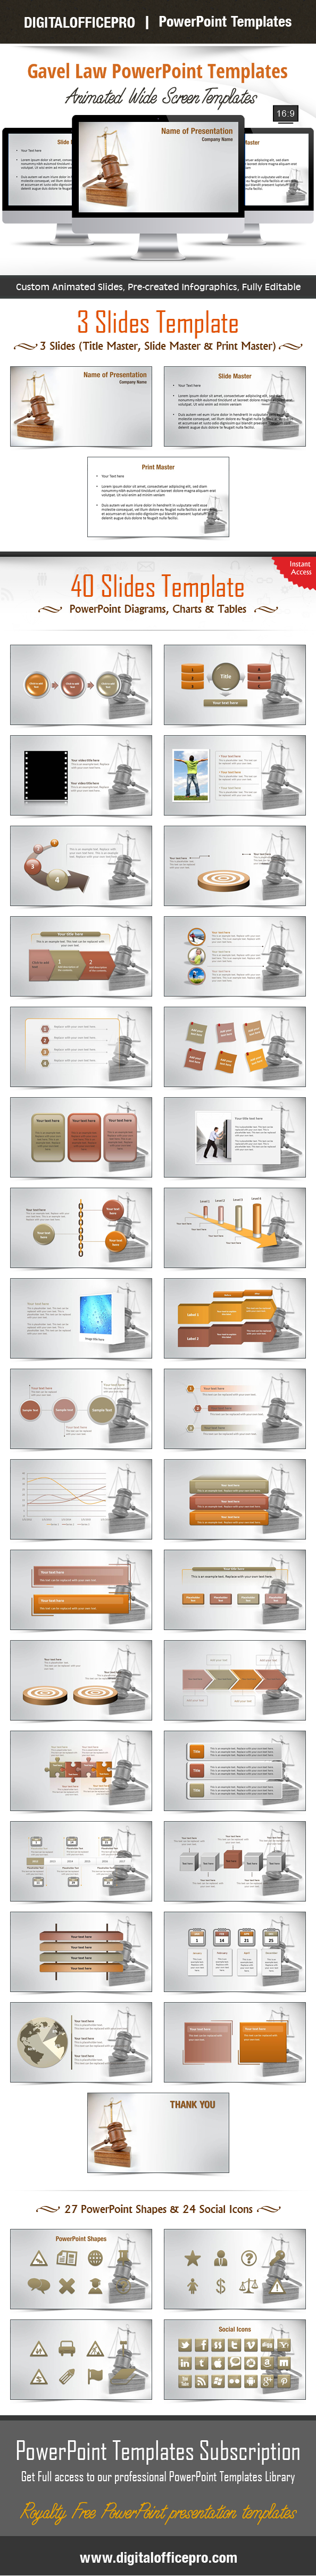 Gavel Law Powerpoint Template Backgrounds Template